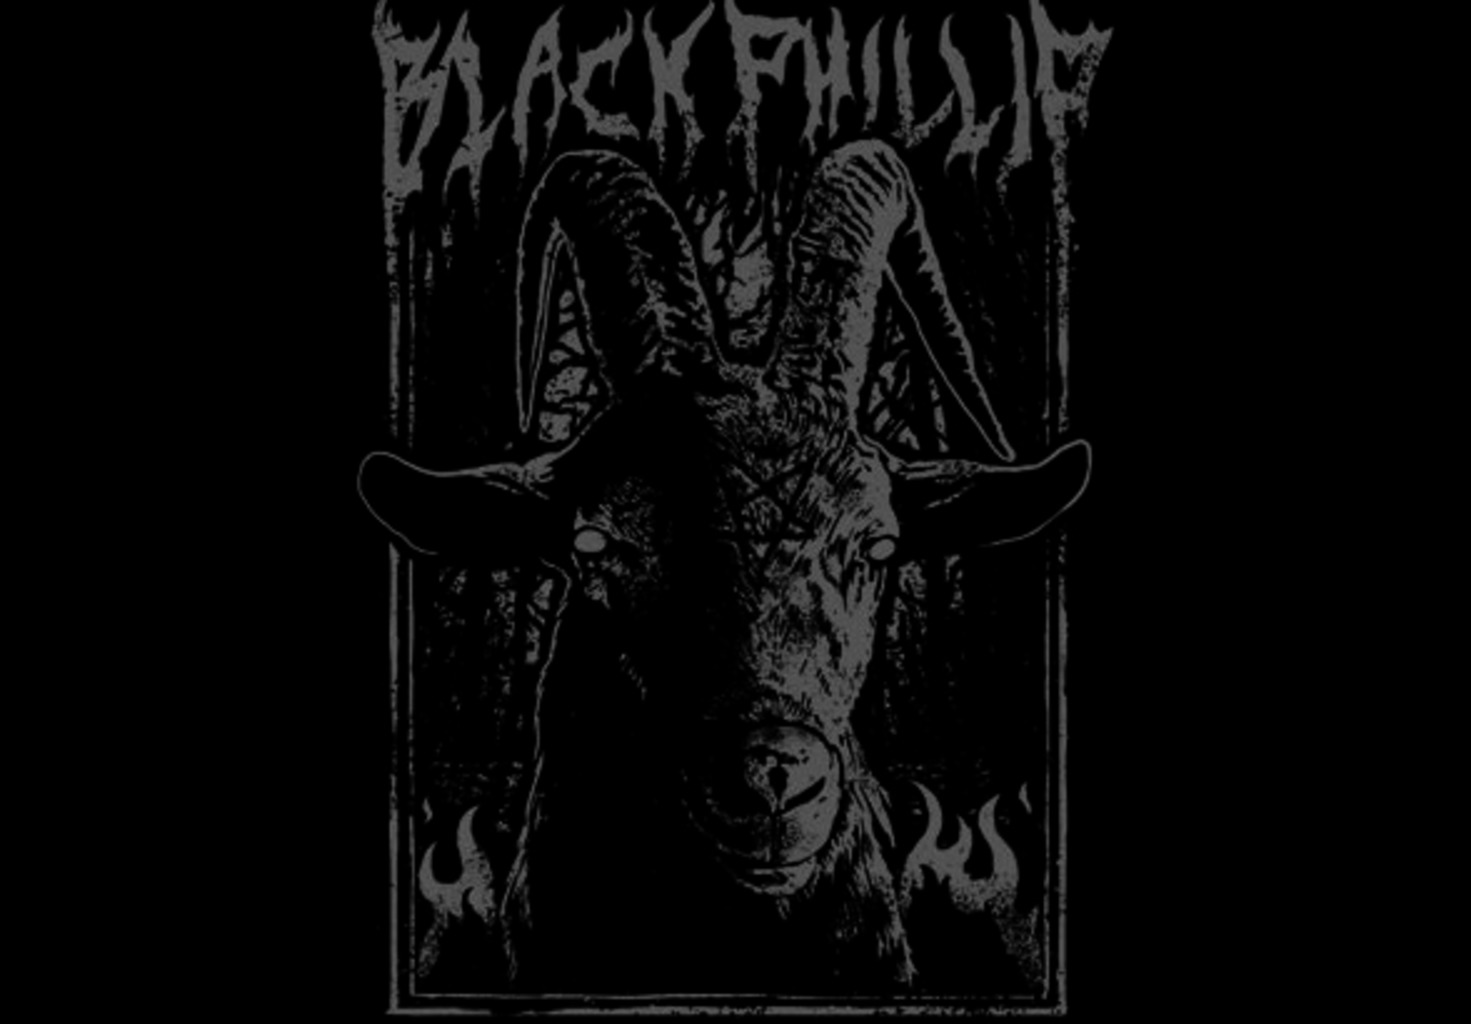 teeVillain: Wouldst thou like to live deliciously?